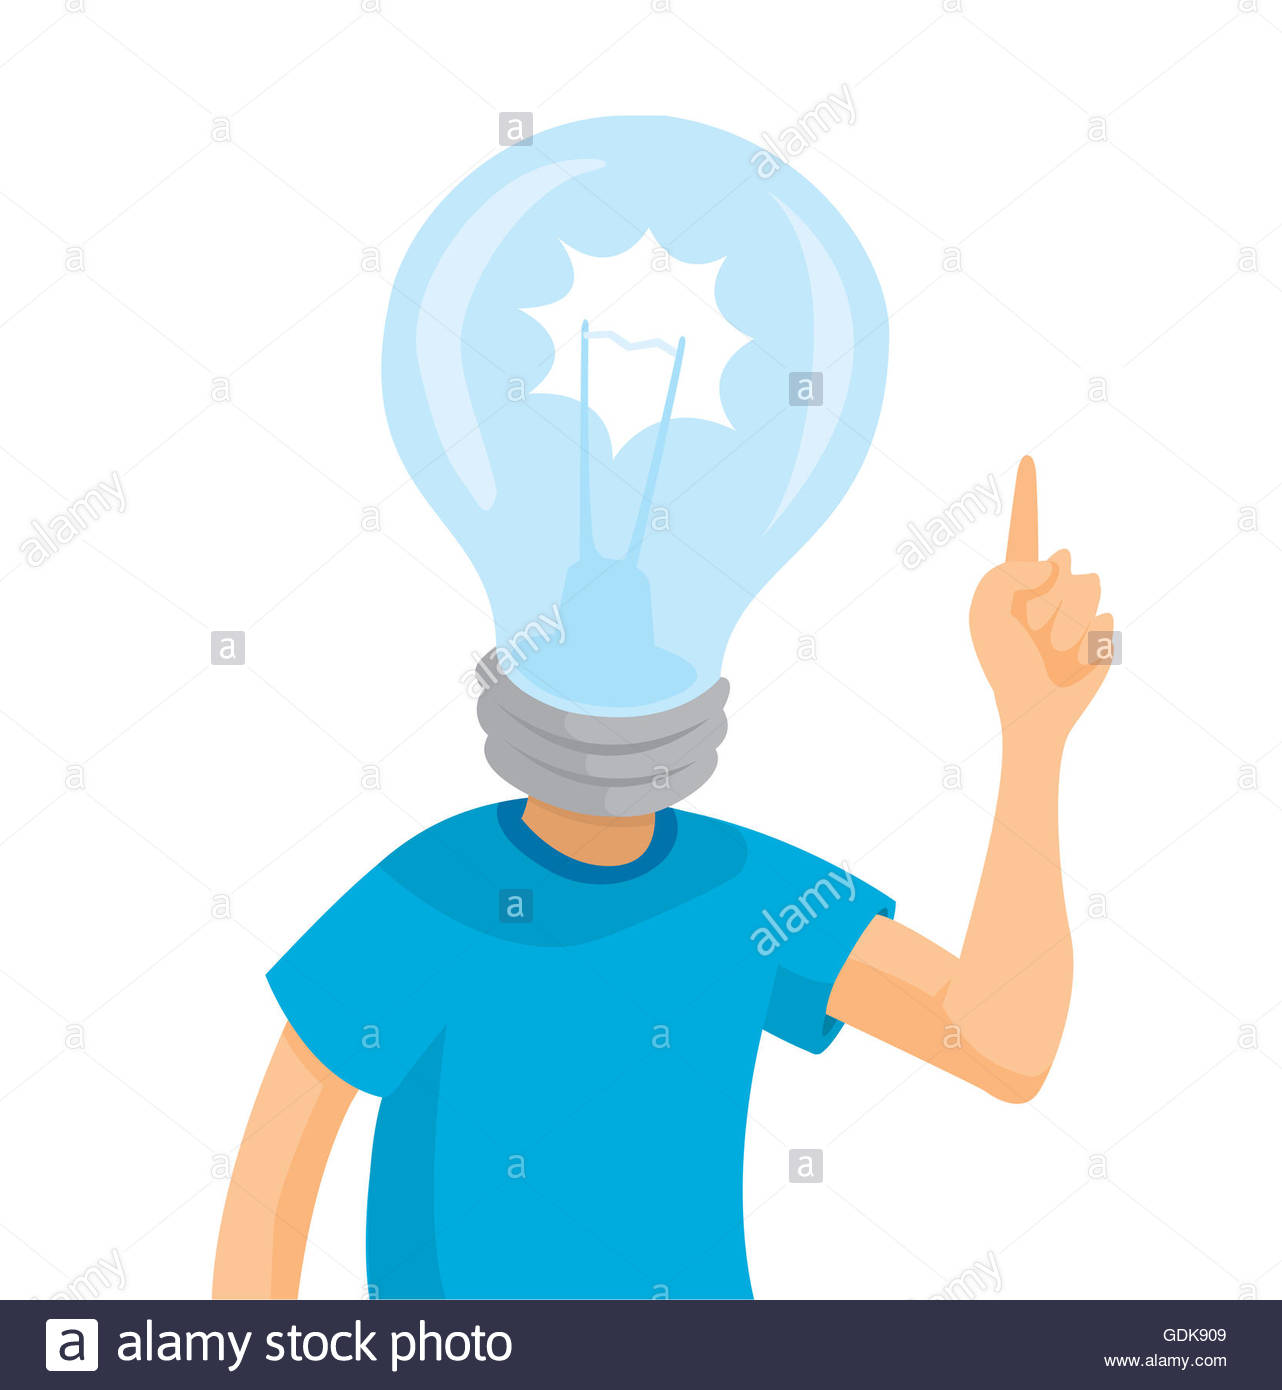 1282x1390 Cartoon Illustration Of Idea Man Or Light Bulb Head Stock Photo